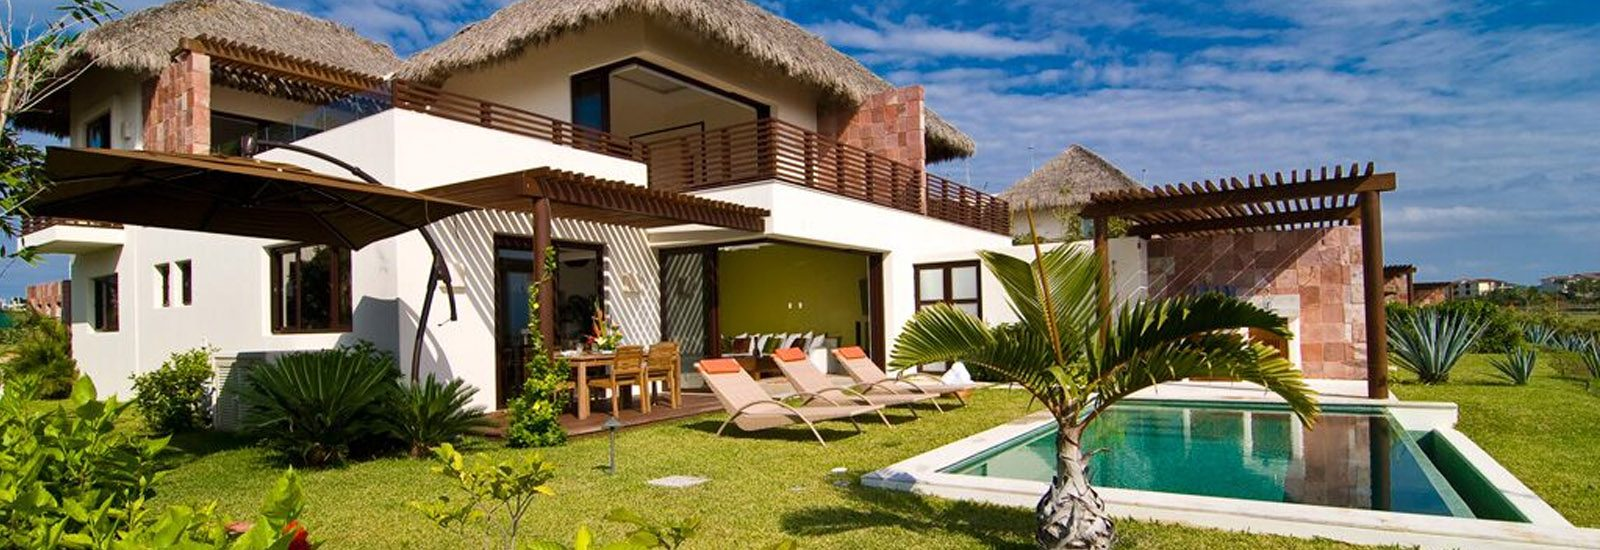 villa turquesa - punta mita | journey mexico luxury villas